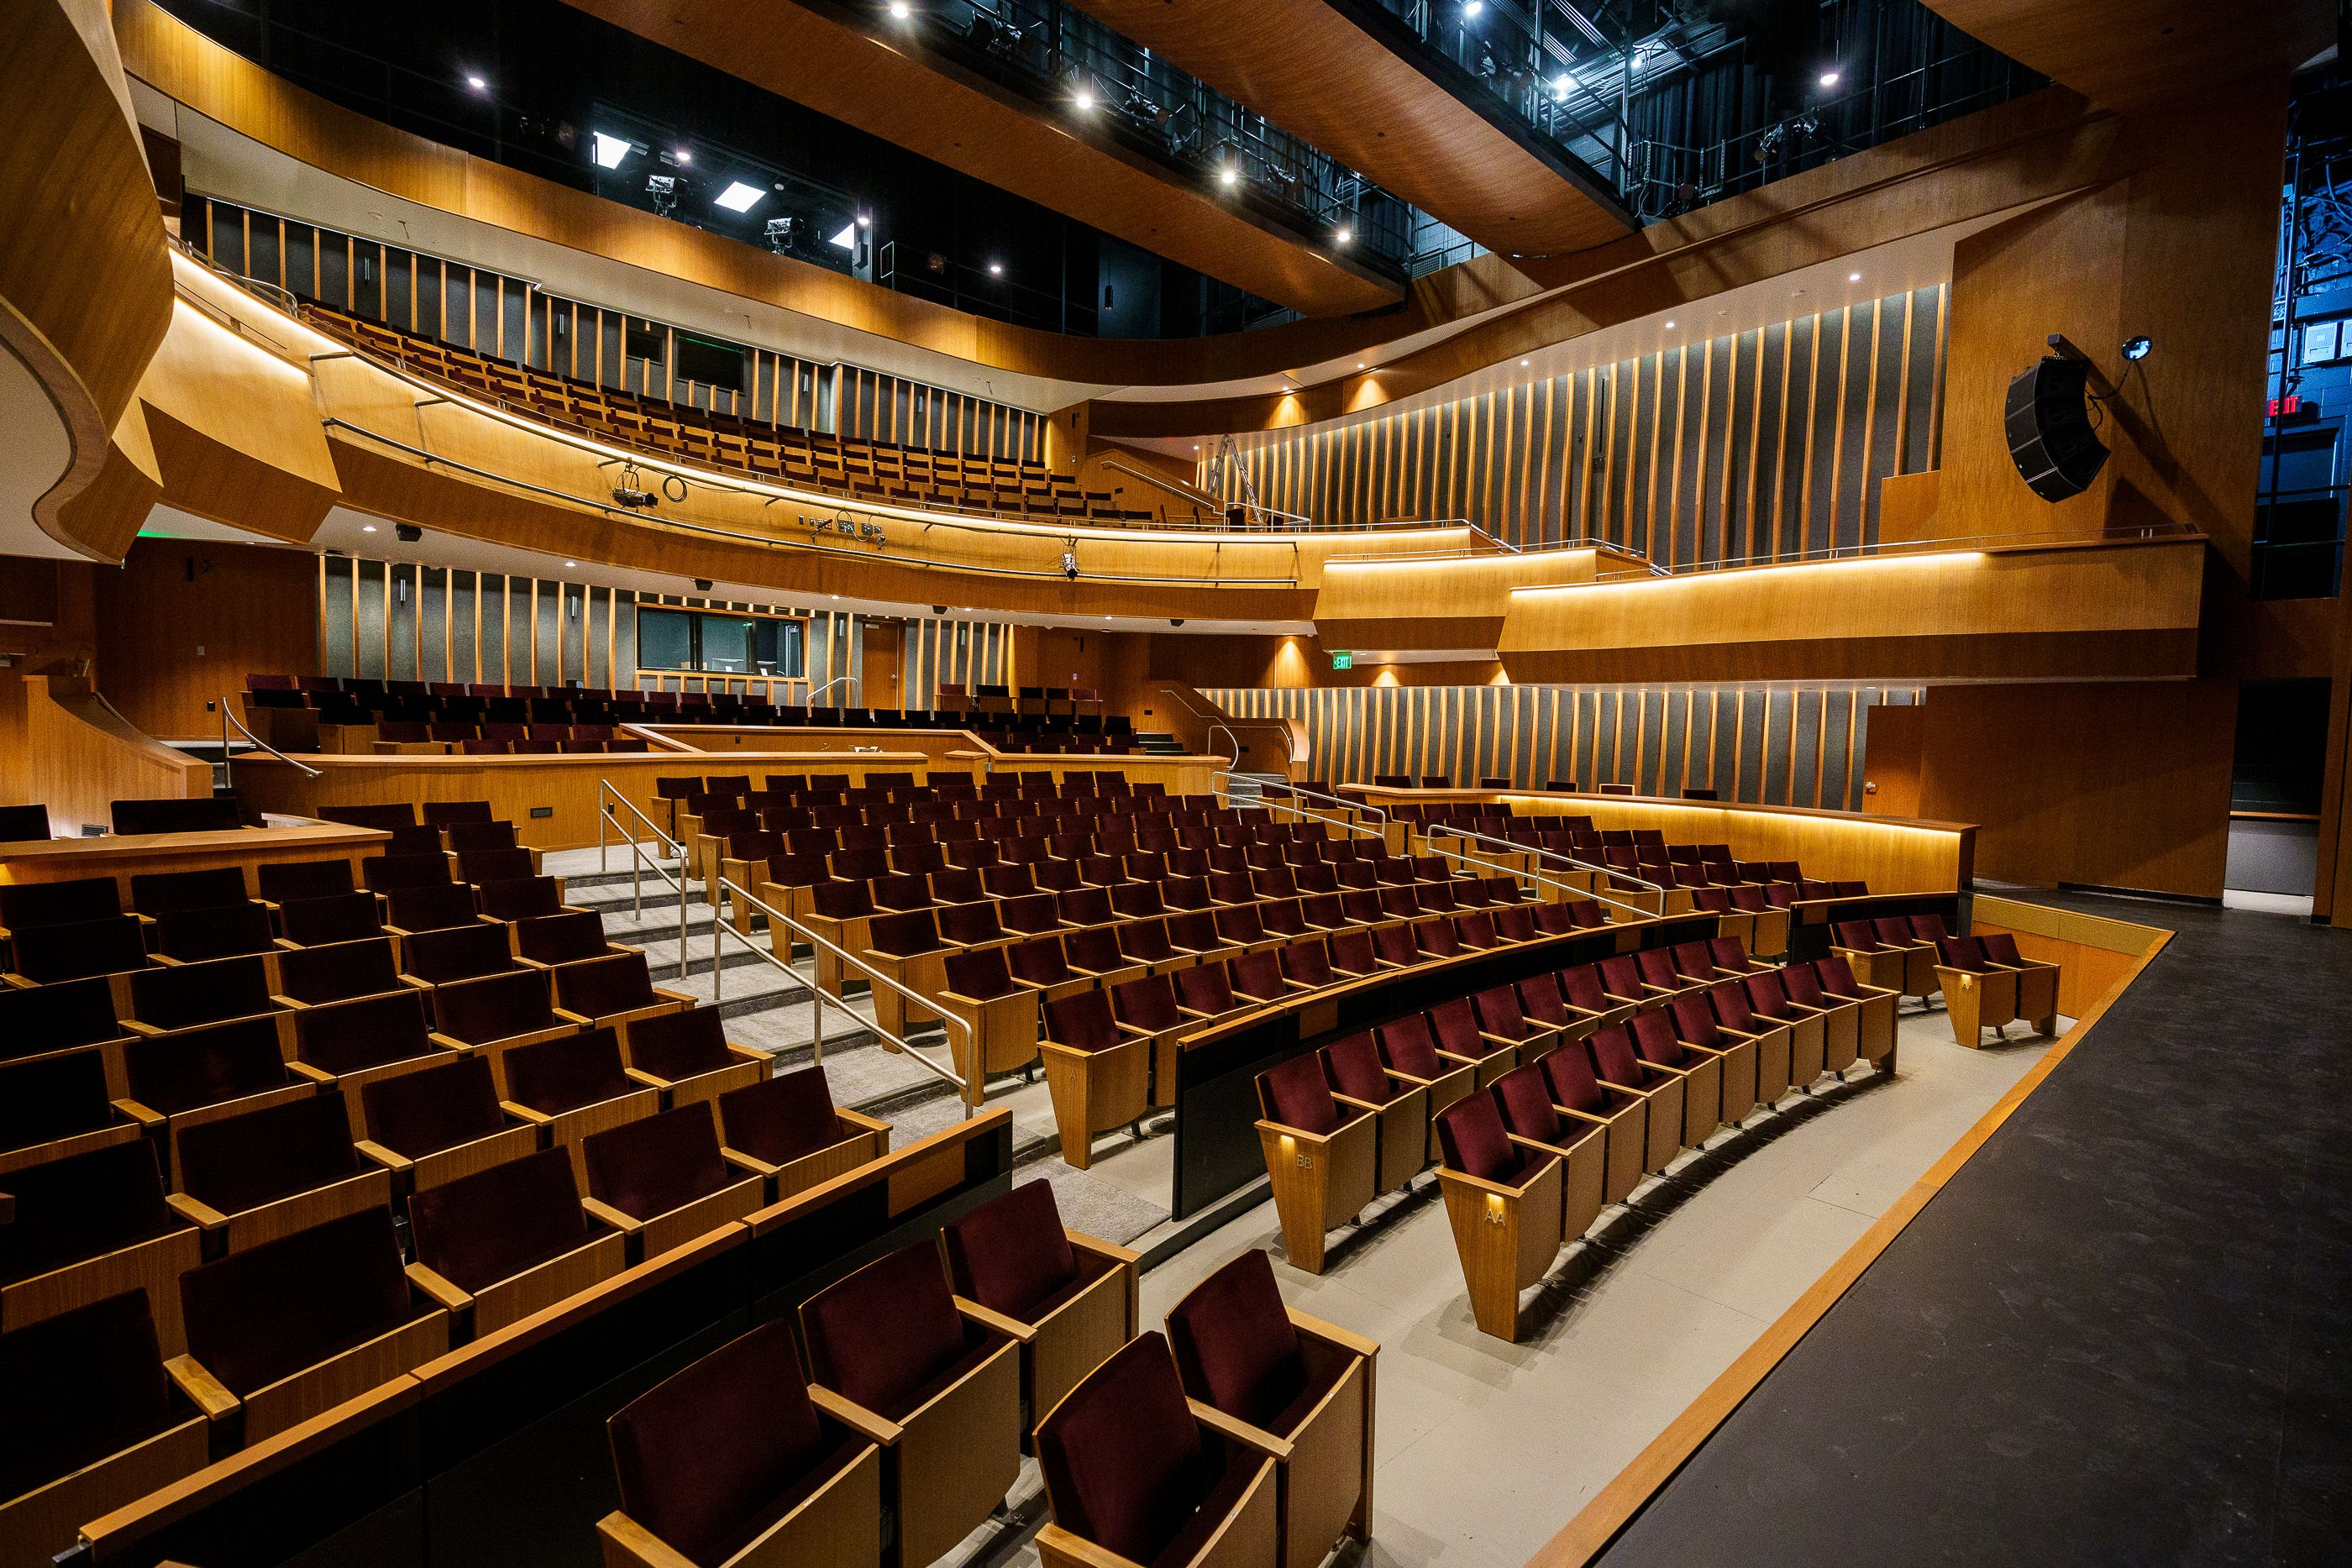 (Trent Nelson  |  The Salt Lake Tribune) Mainstage Theater at the new Mid-Valley Performing Arts Center in Taylorsville on Friday, May 21, 2021.